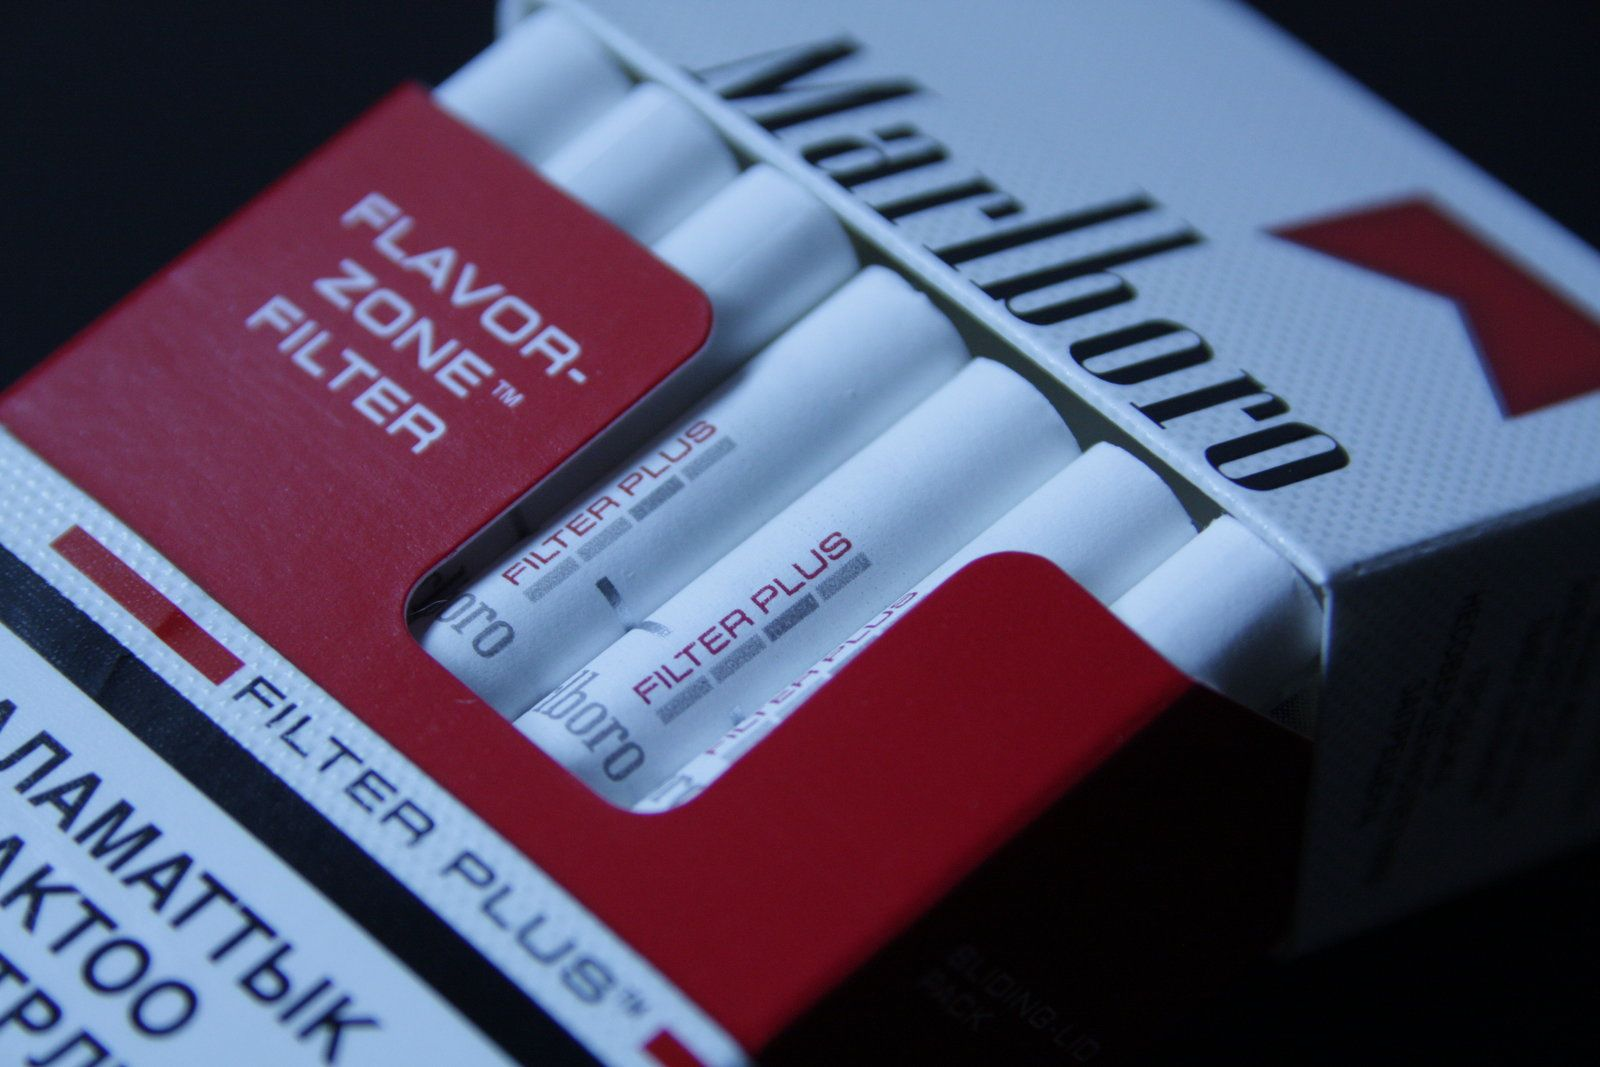 Marlboro ultra light menthols